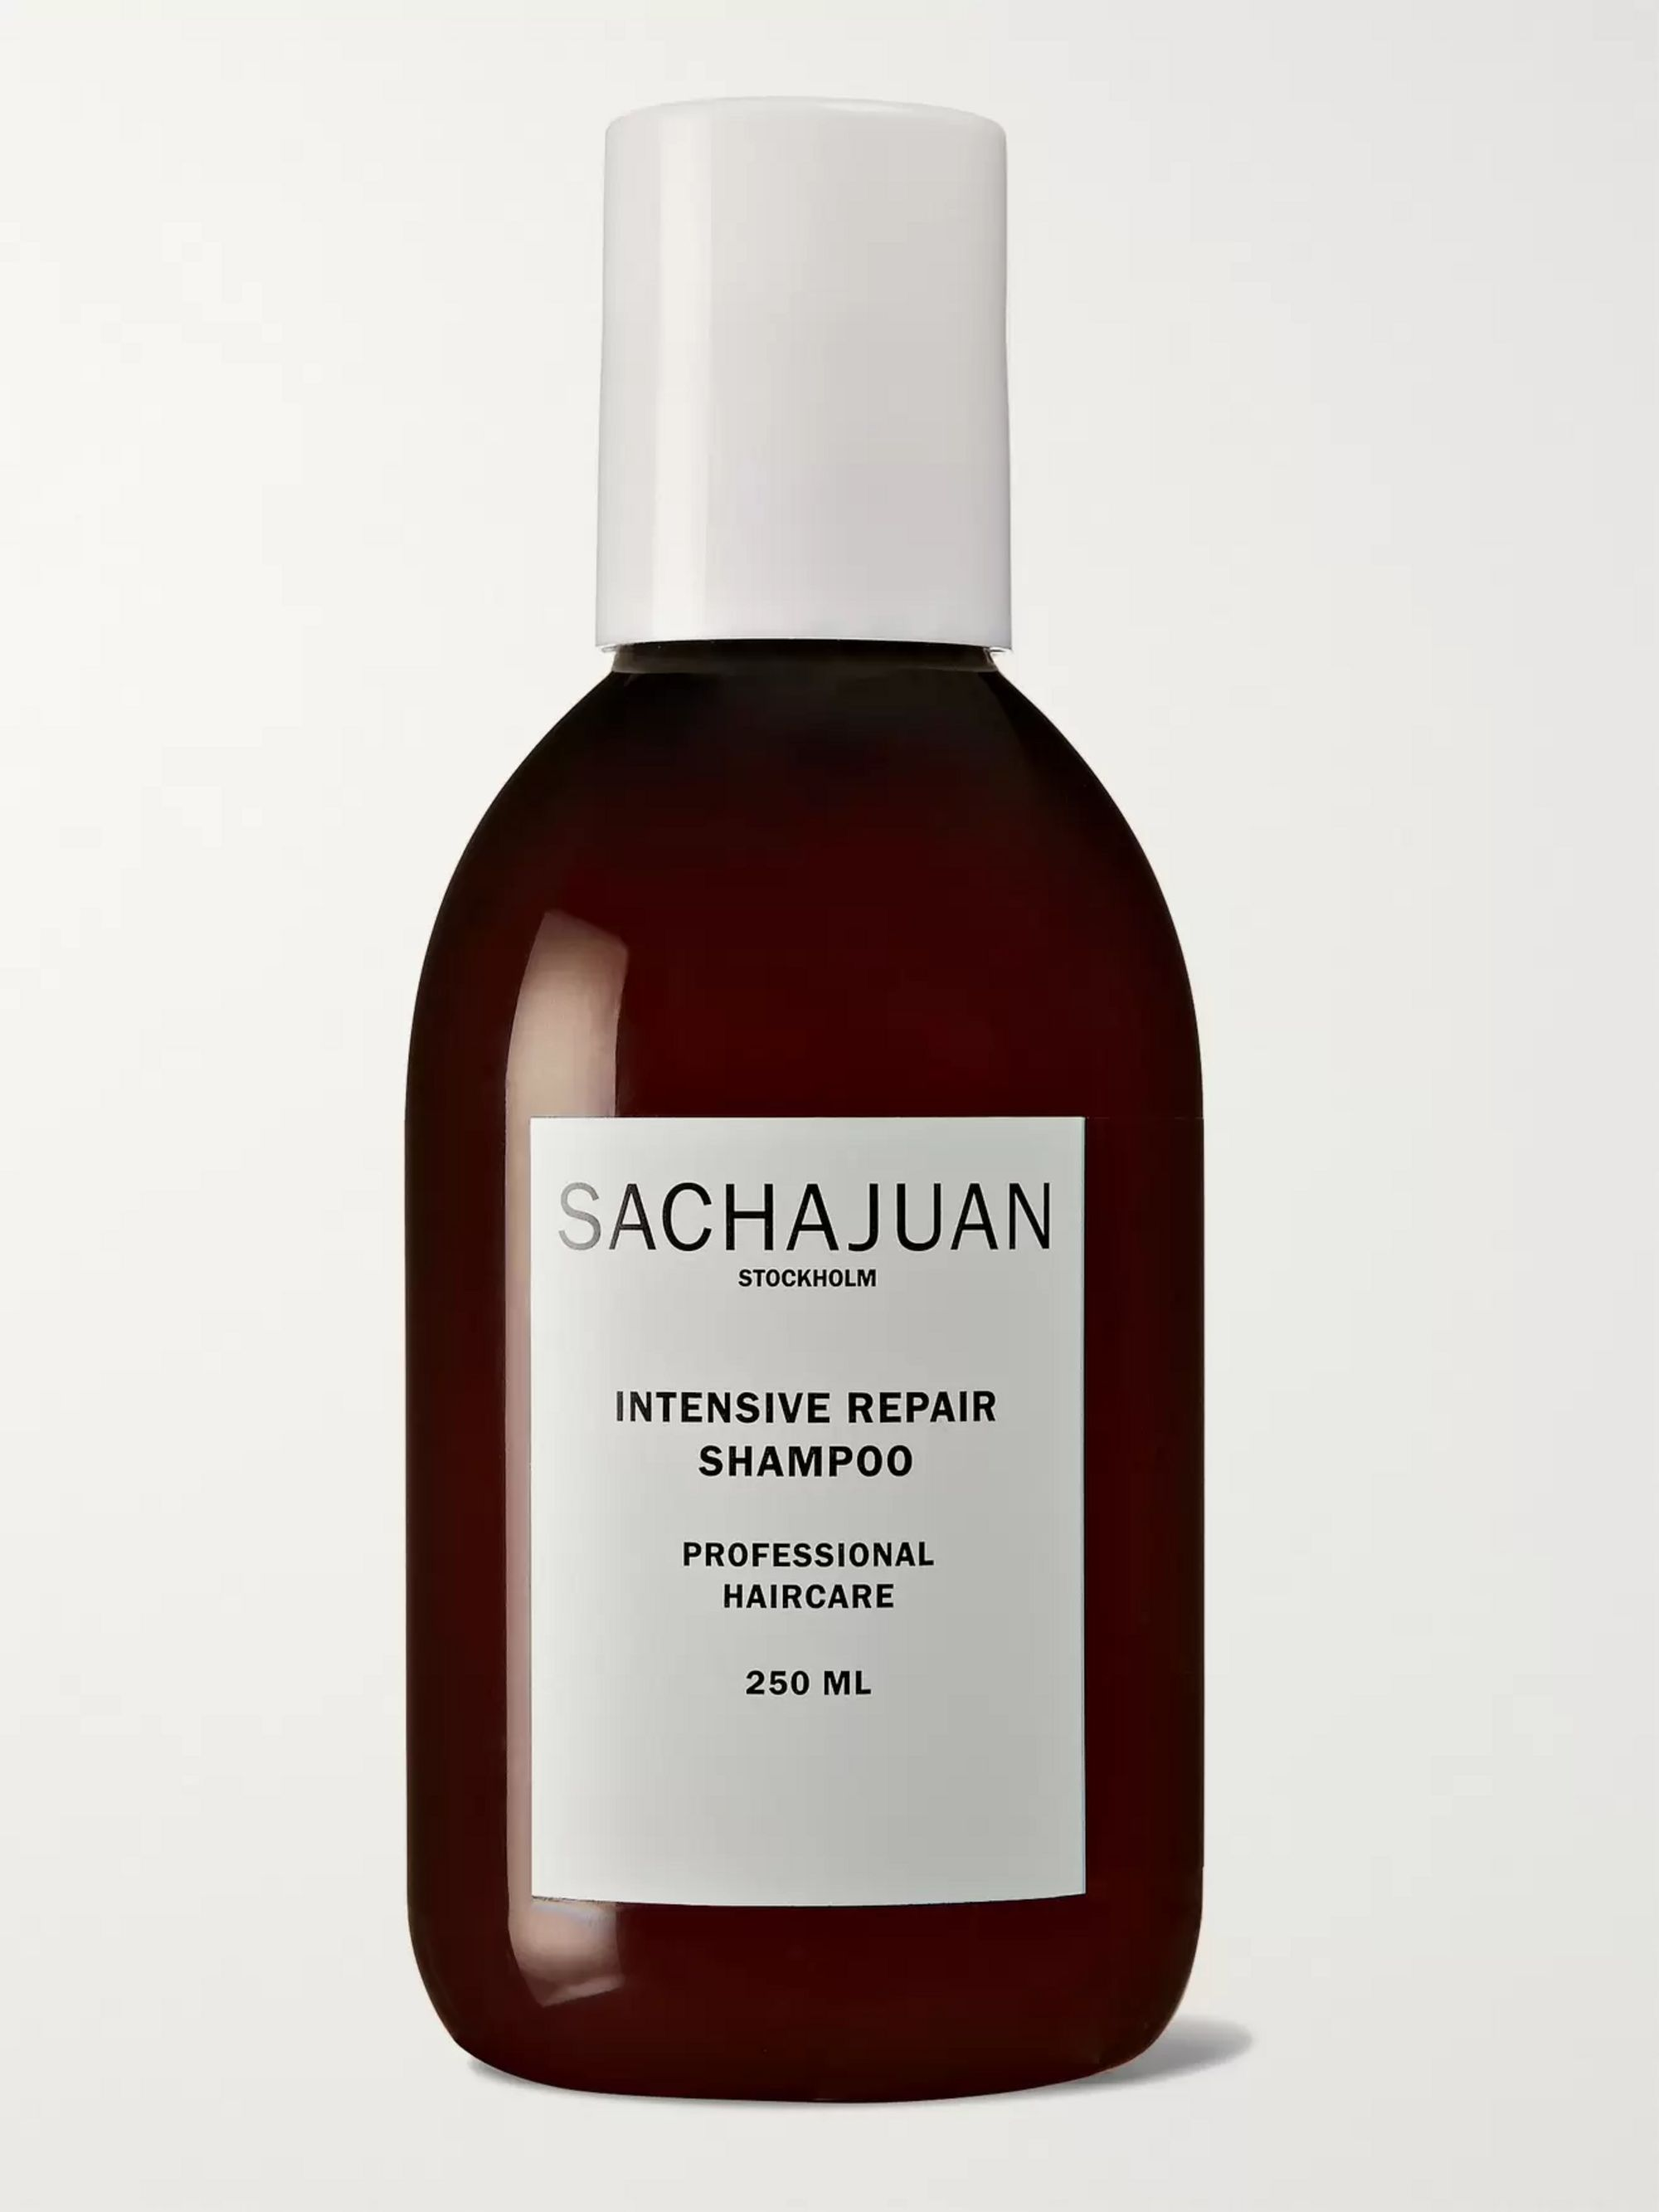 SACHAJUAN Intensive Repair Shampoo, 250ml